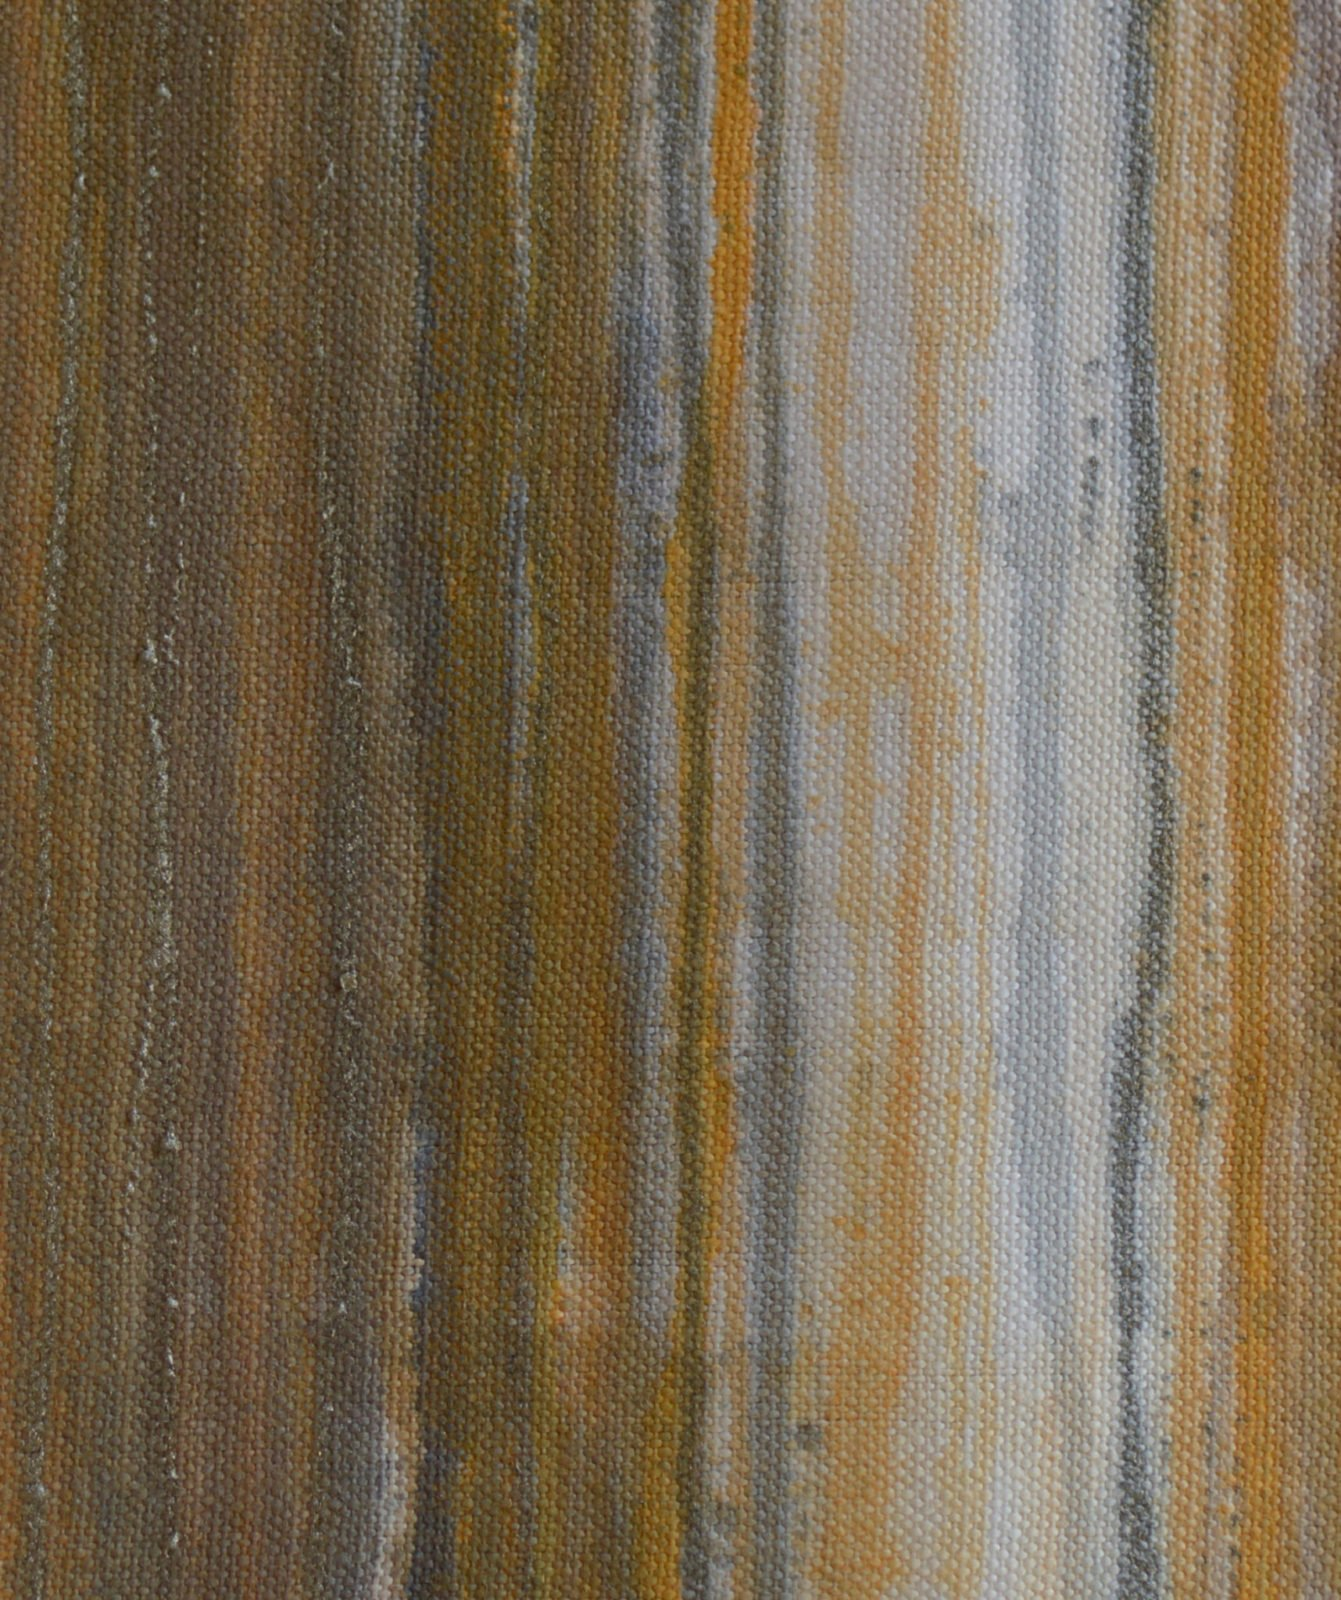 Detail of Serenade, Gold Ochre, one of the three outside panels of acrylic on canvas of Serenade, which consists of 6 canvases, each 137cm high and 320cm wide